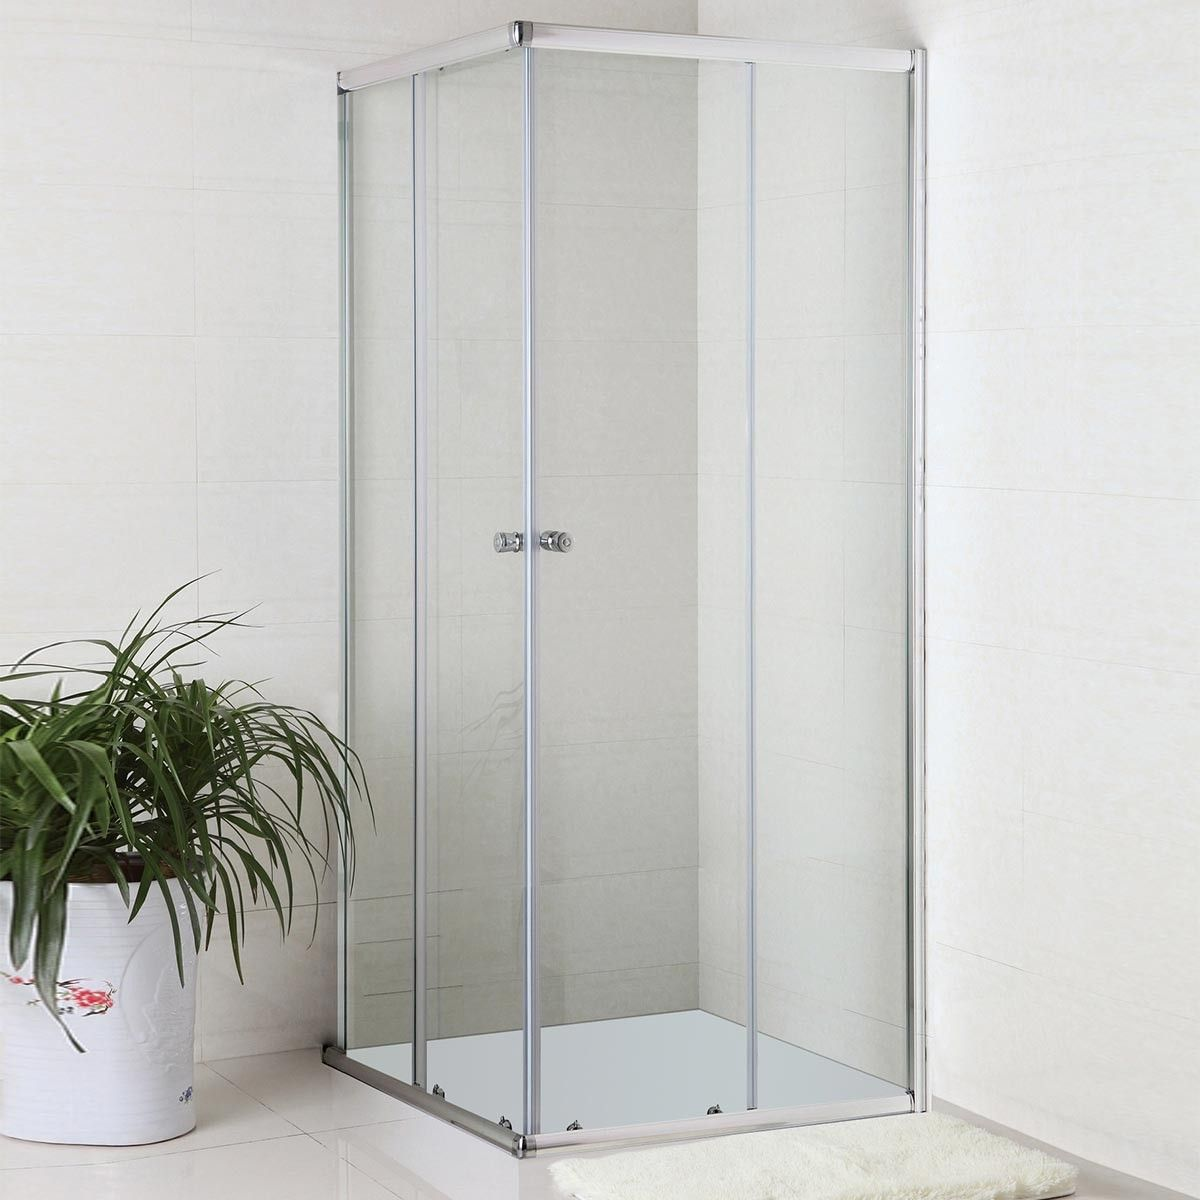 36 x 36 In. (90 x 90 cm) Clear Tempered Glass Shower Enclosure (WE-08)